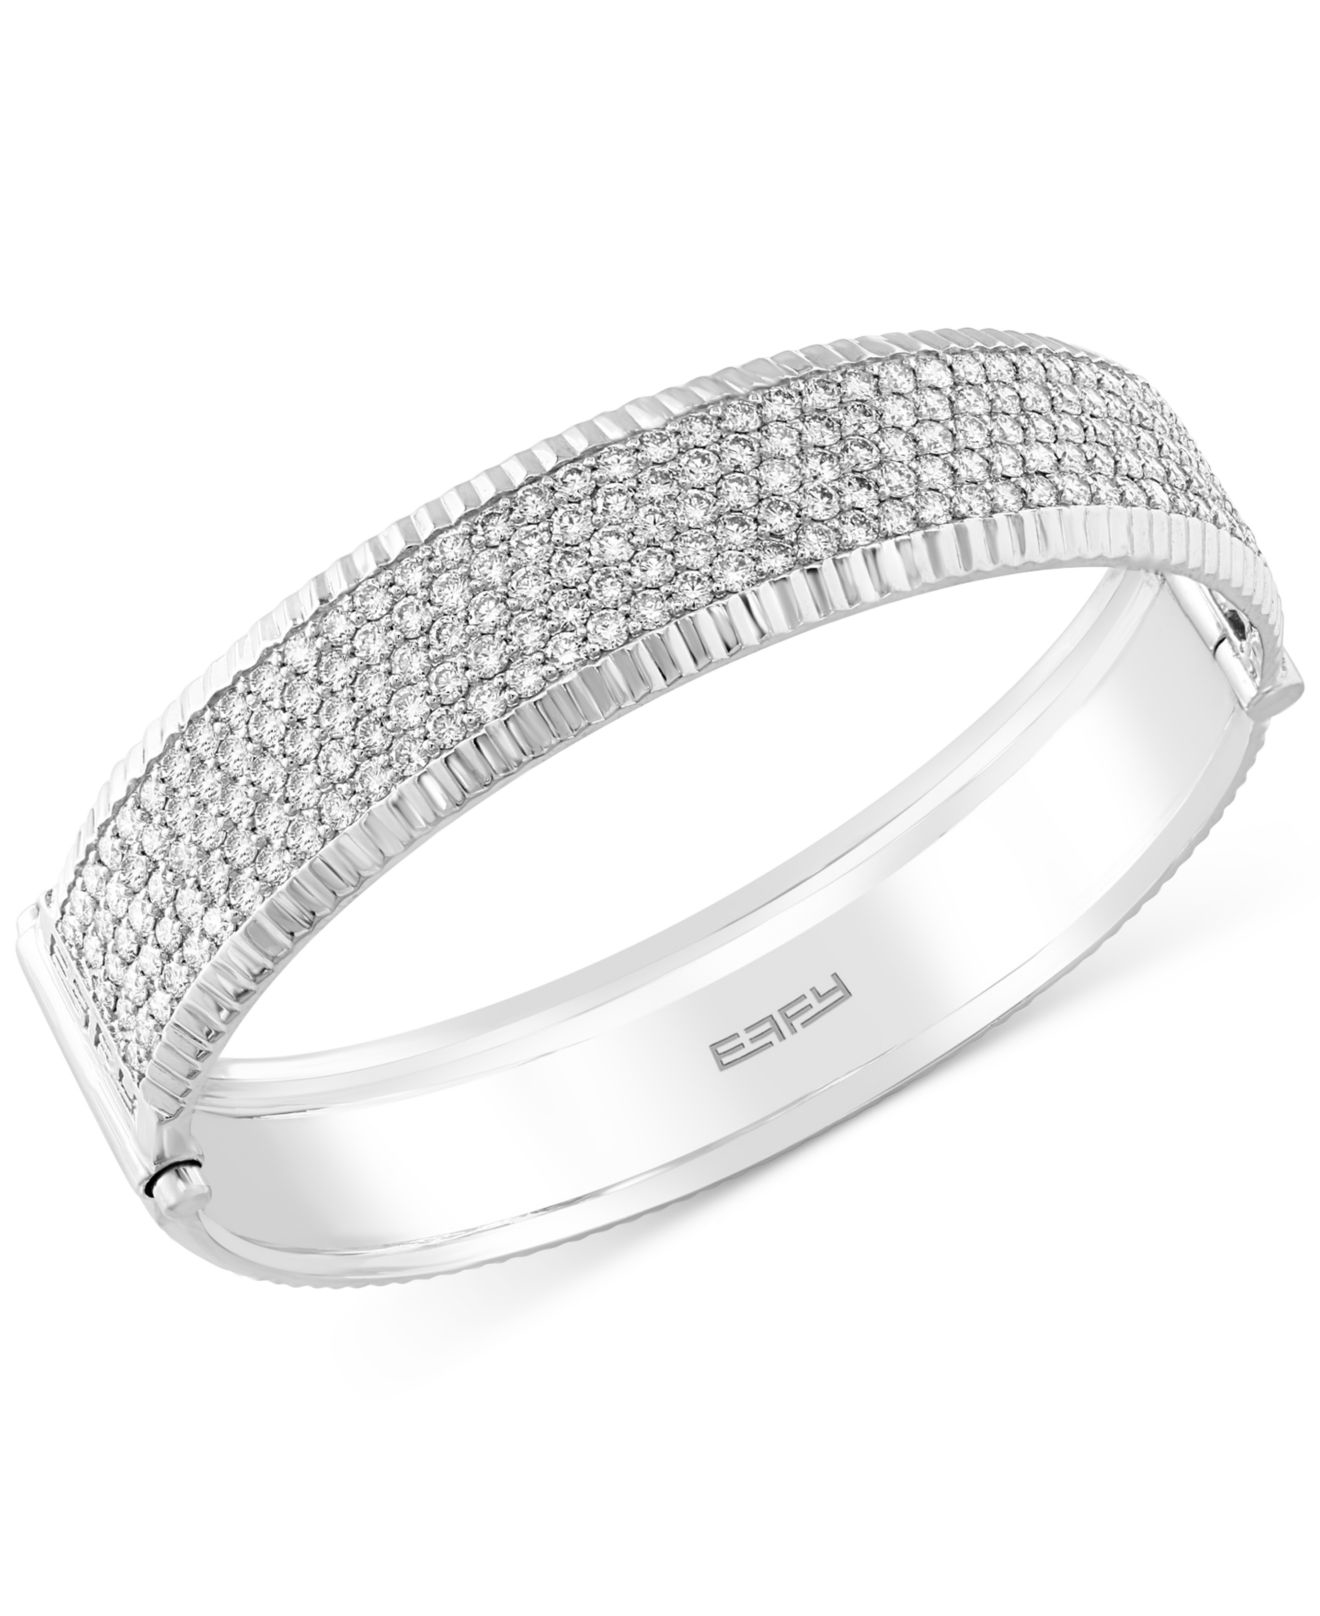 products bangles pin diamond bracelet white octagon jewelry bangle pave and diamonds pinterest bracelets